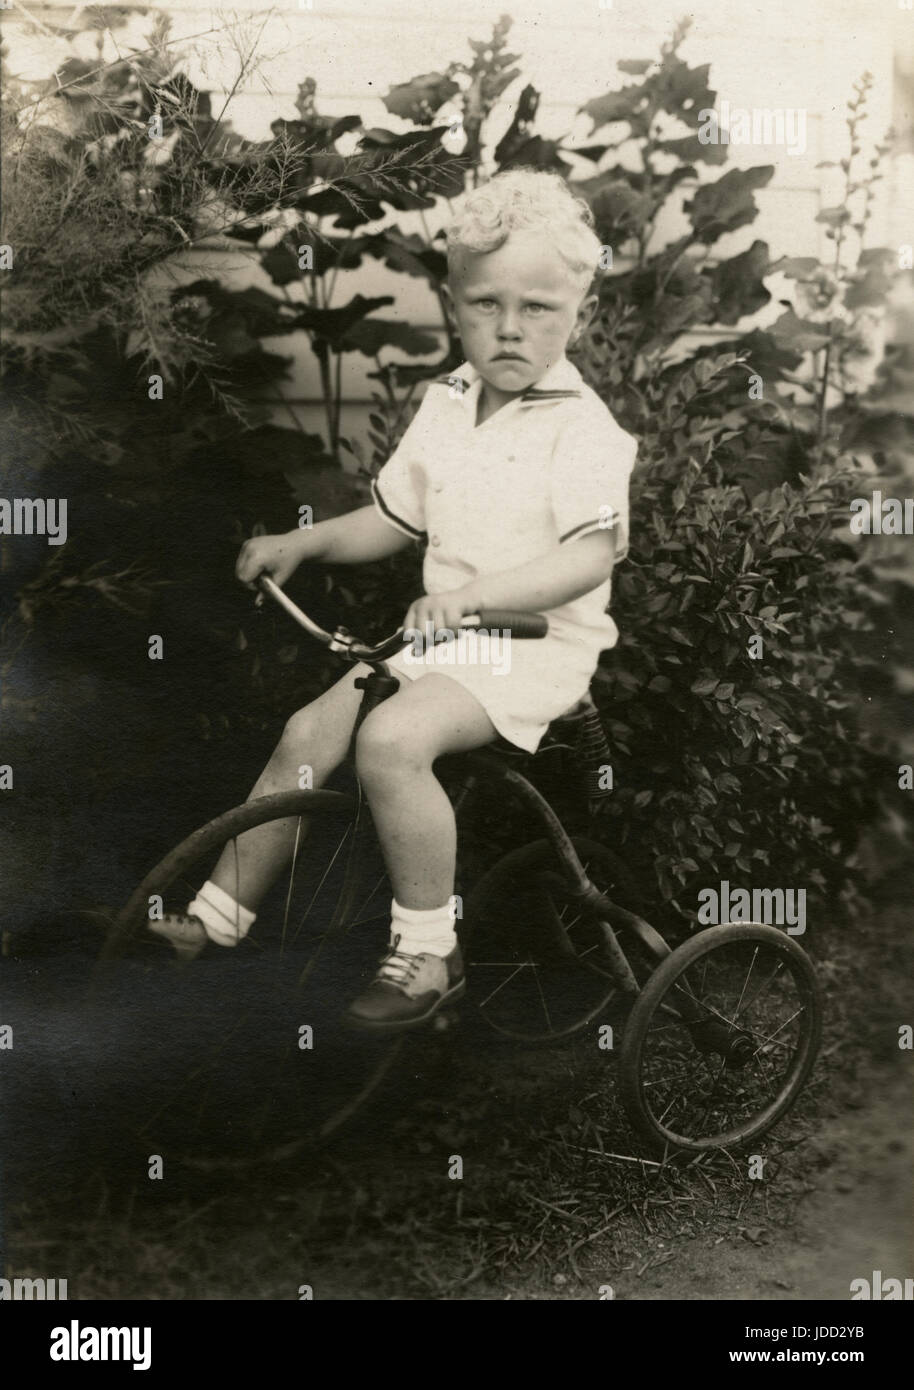 Antique c1930 photograph, six year old boy on a tricycle. Location is probably Minnesota. SOURCE: ORIGINAL PHOTOGRAPH. - Stock Image